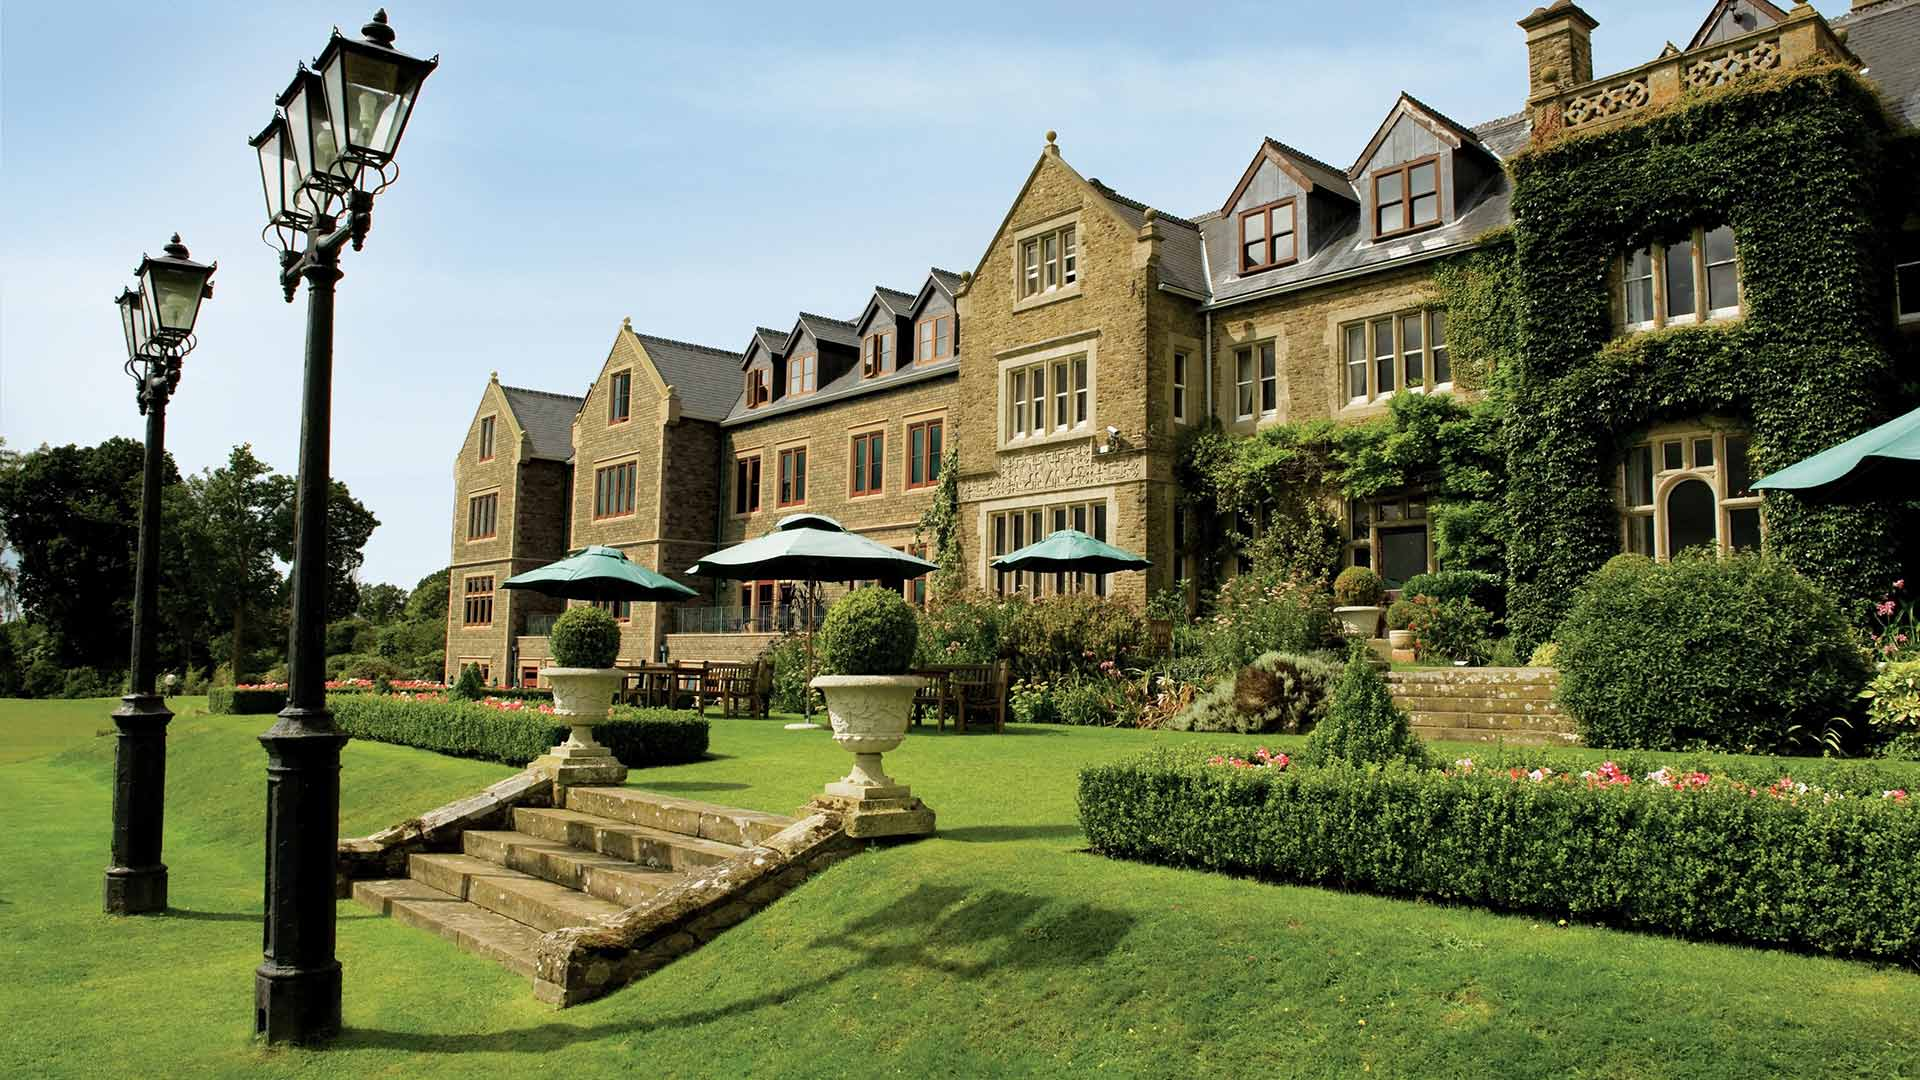 South lodge upcoming events pride of britain hotels for Small hotels of the world uk